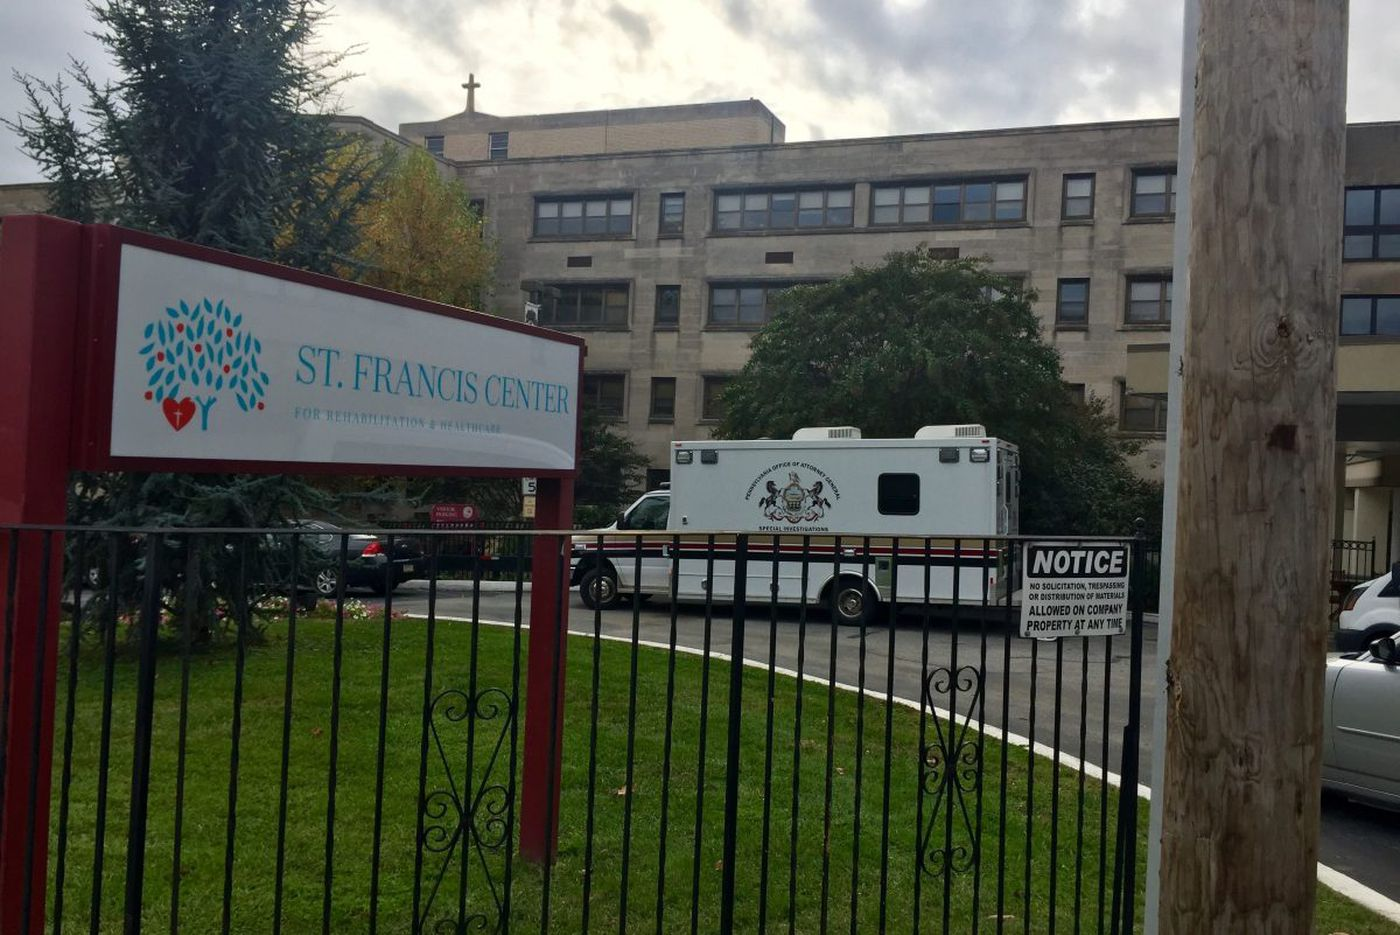 St. Francis nursing home in Darby fined $782K for deficient care